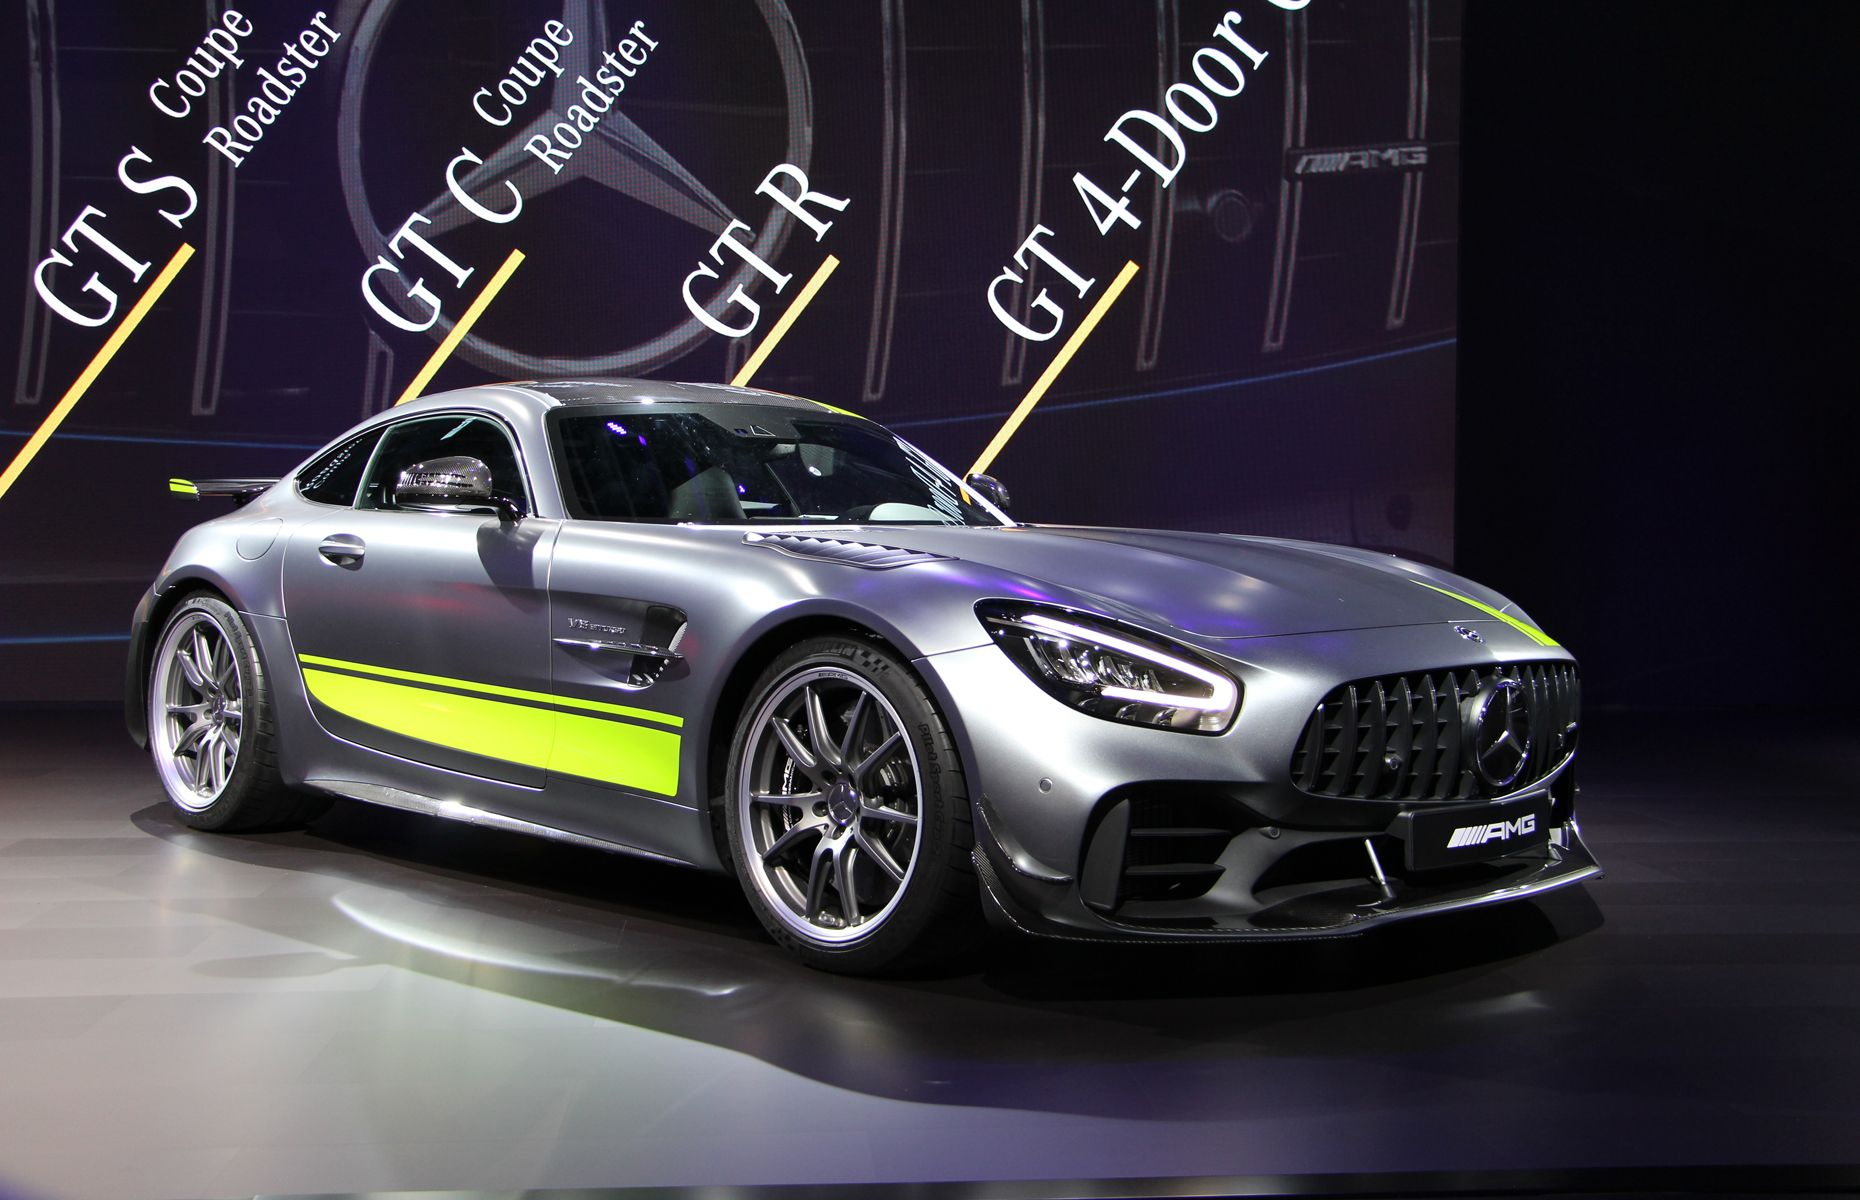 Mercedes Amg Unveils Even Faster Gt R Pro Mercedes Amg Mercedes